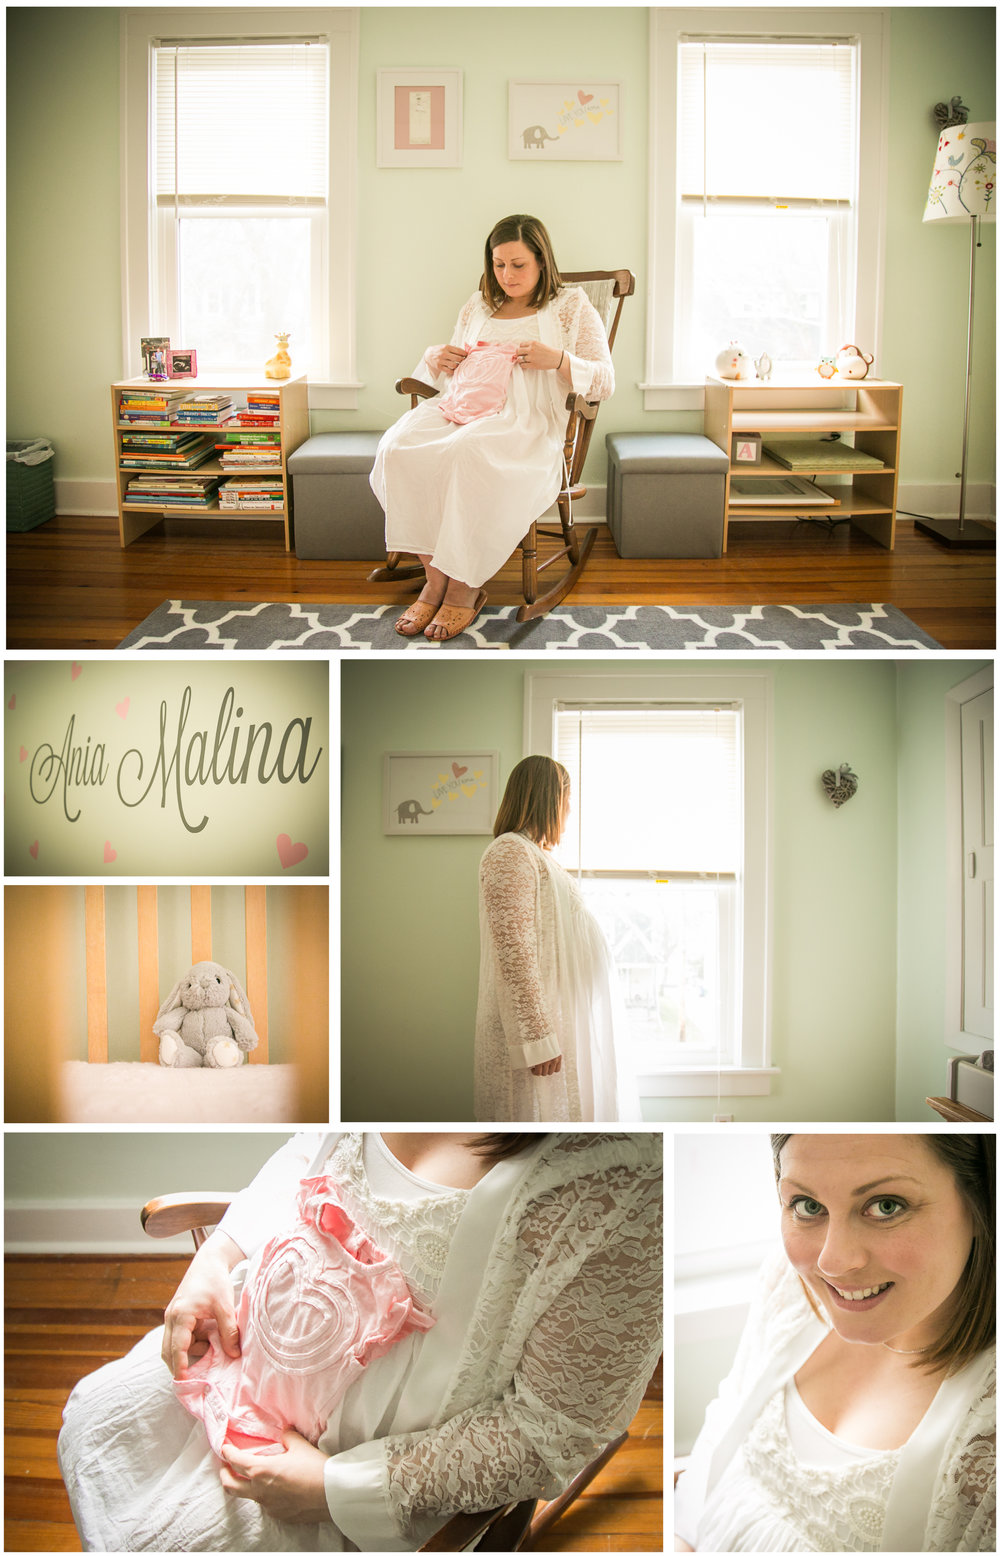 We also wanted to document Ania's nursery since it was prepared so sweetly. My favorite part of the shoot was recreating a photo that was taken of Maria's mom when she was pregnant....with Maria.